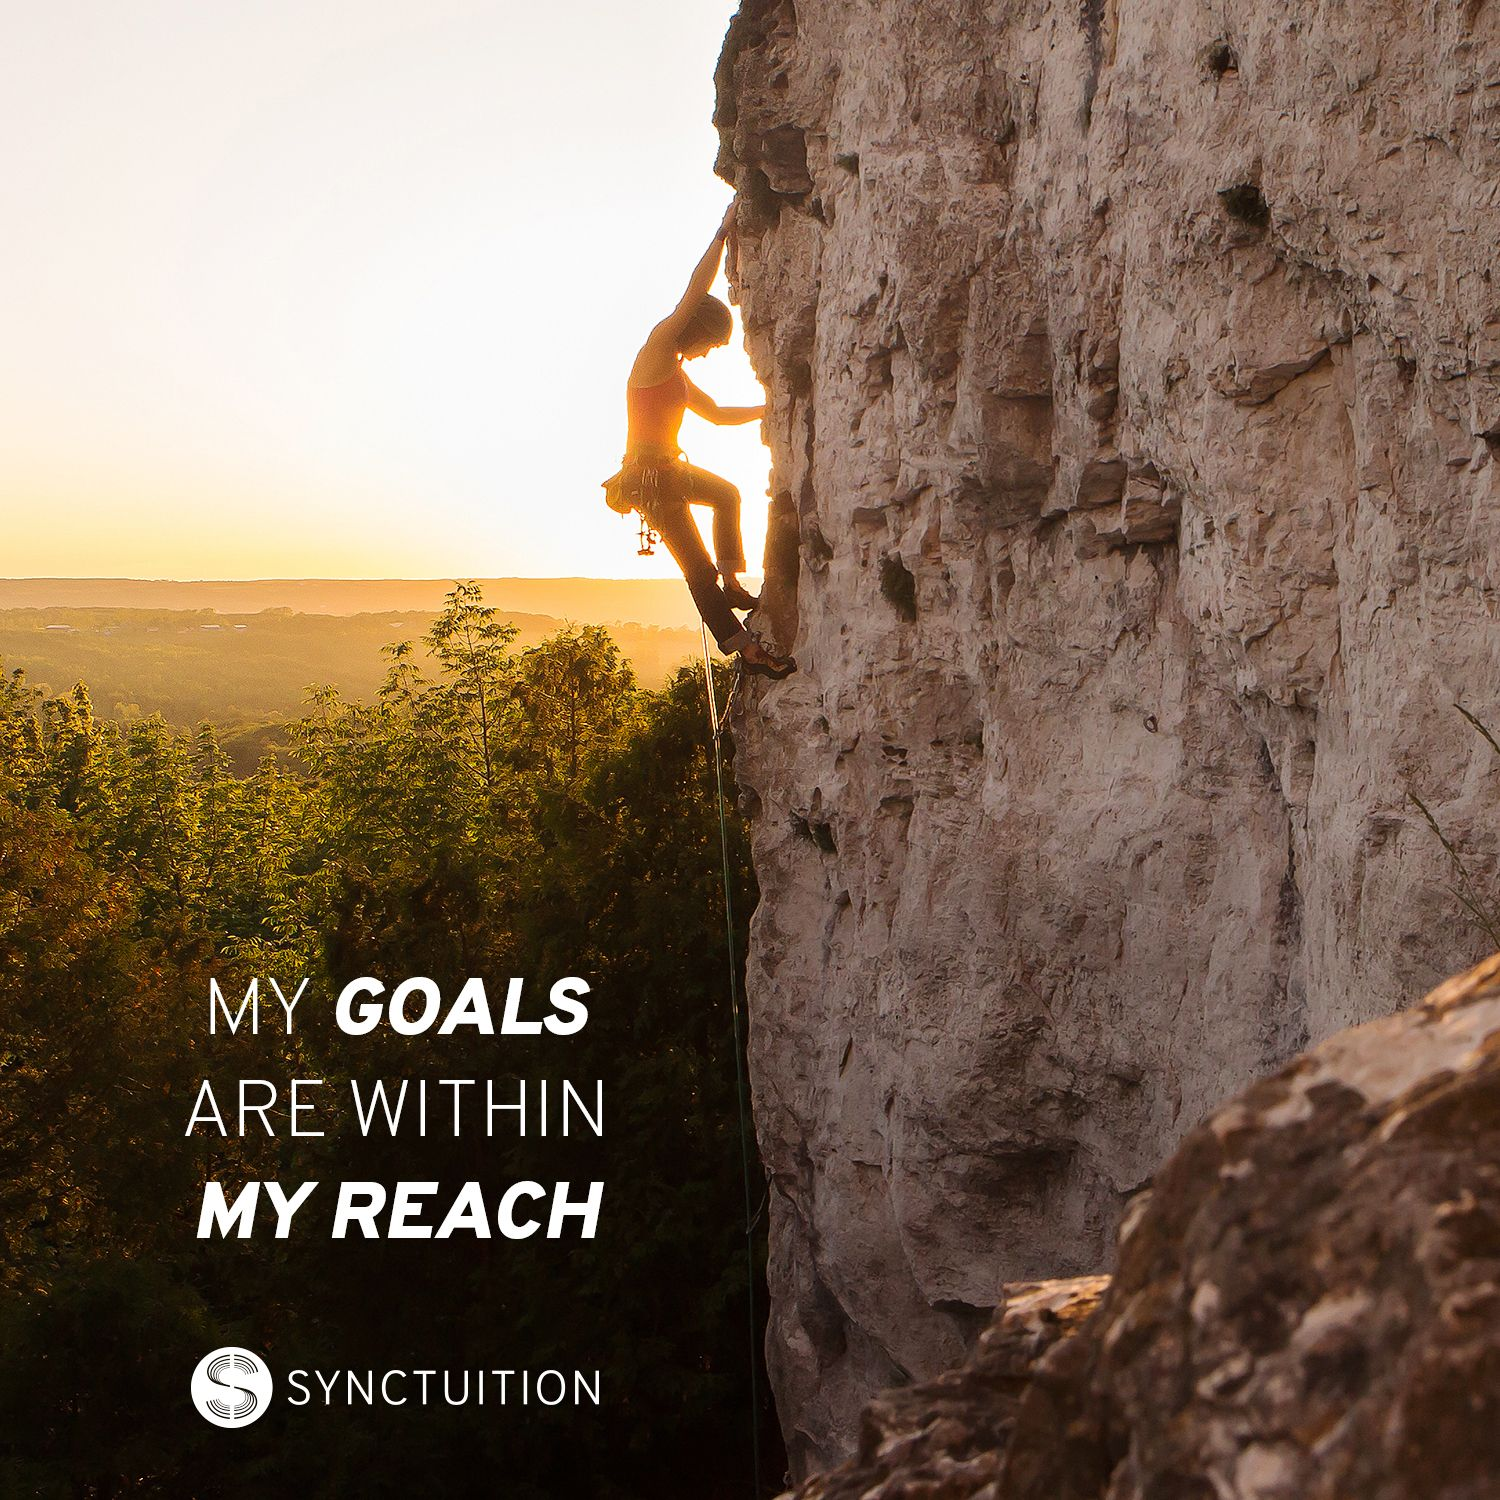 A woman climbing a mountain on a sunny day with the quote